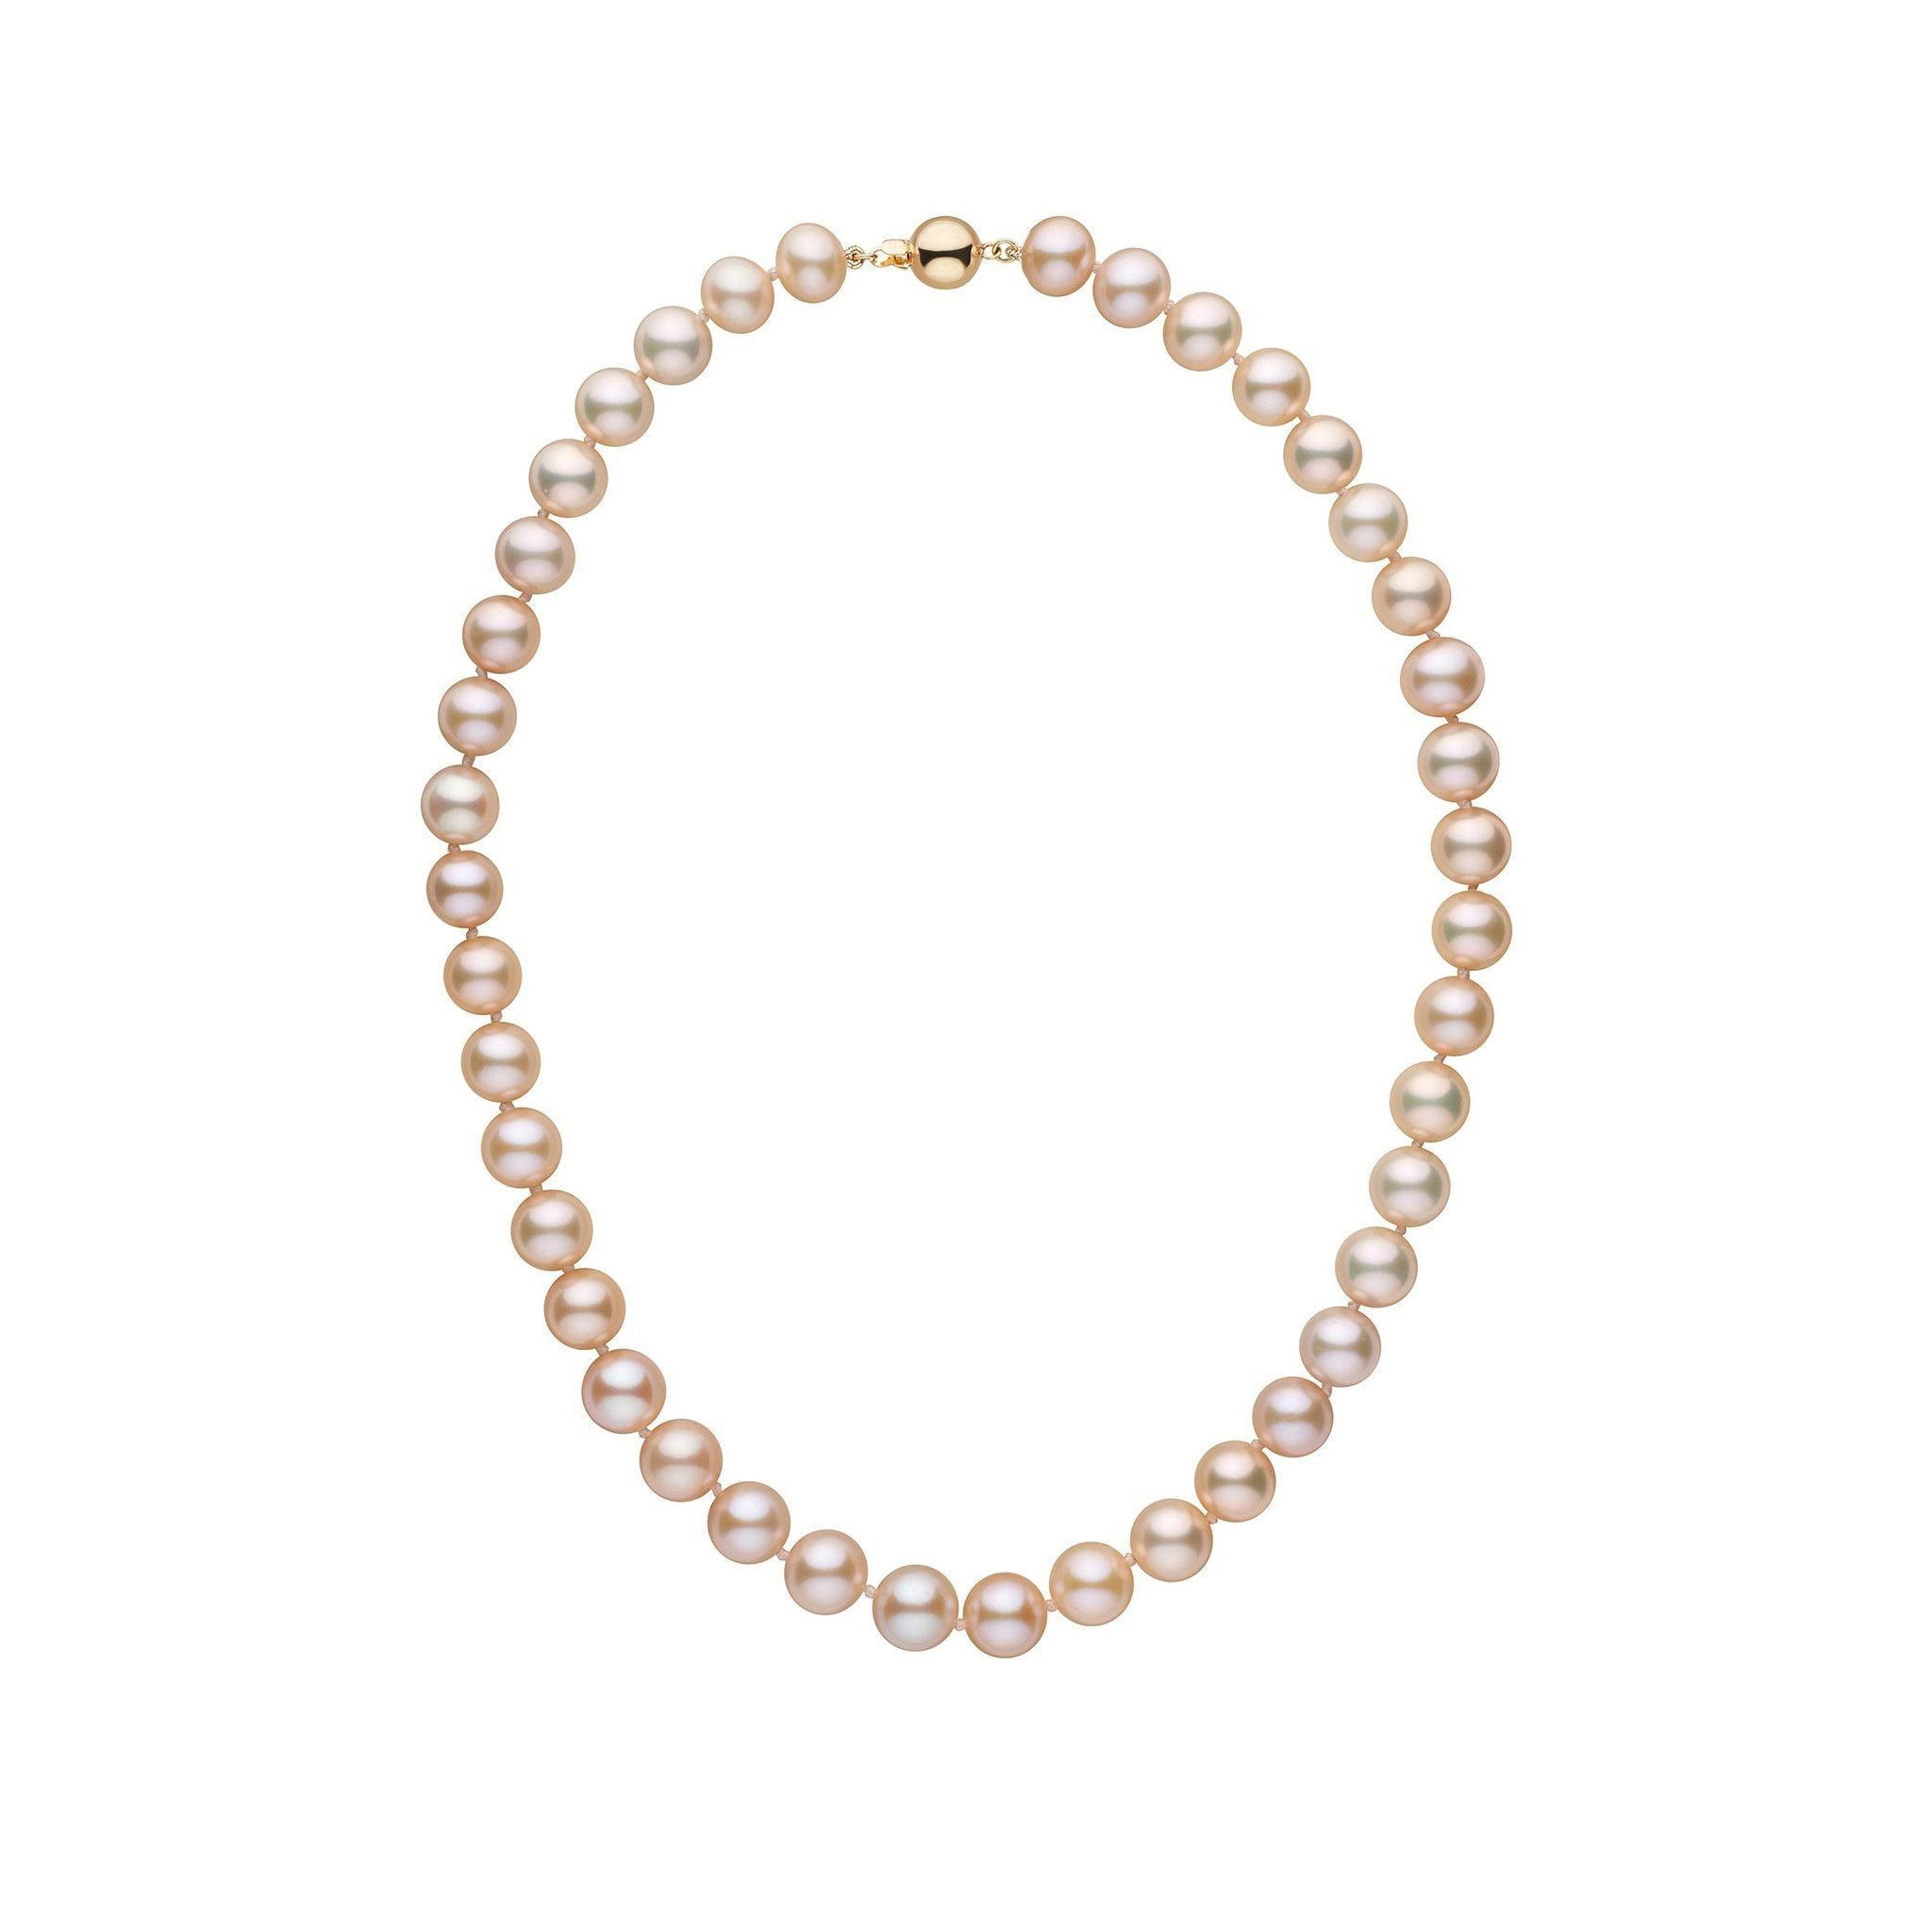 9.5-10.5 mm 16 inch AAA Pink to Peach Freshwater Pearl Necklace